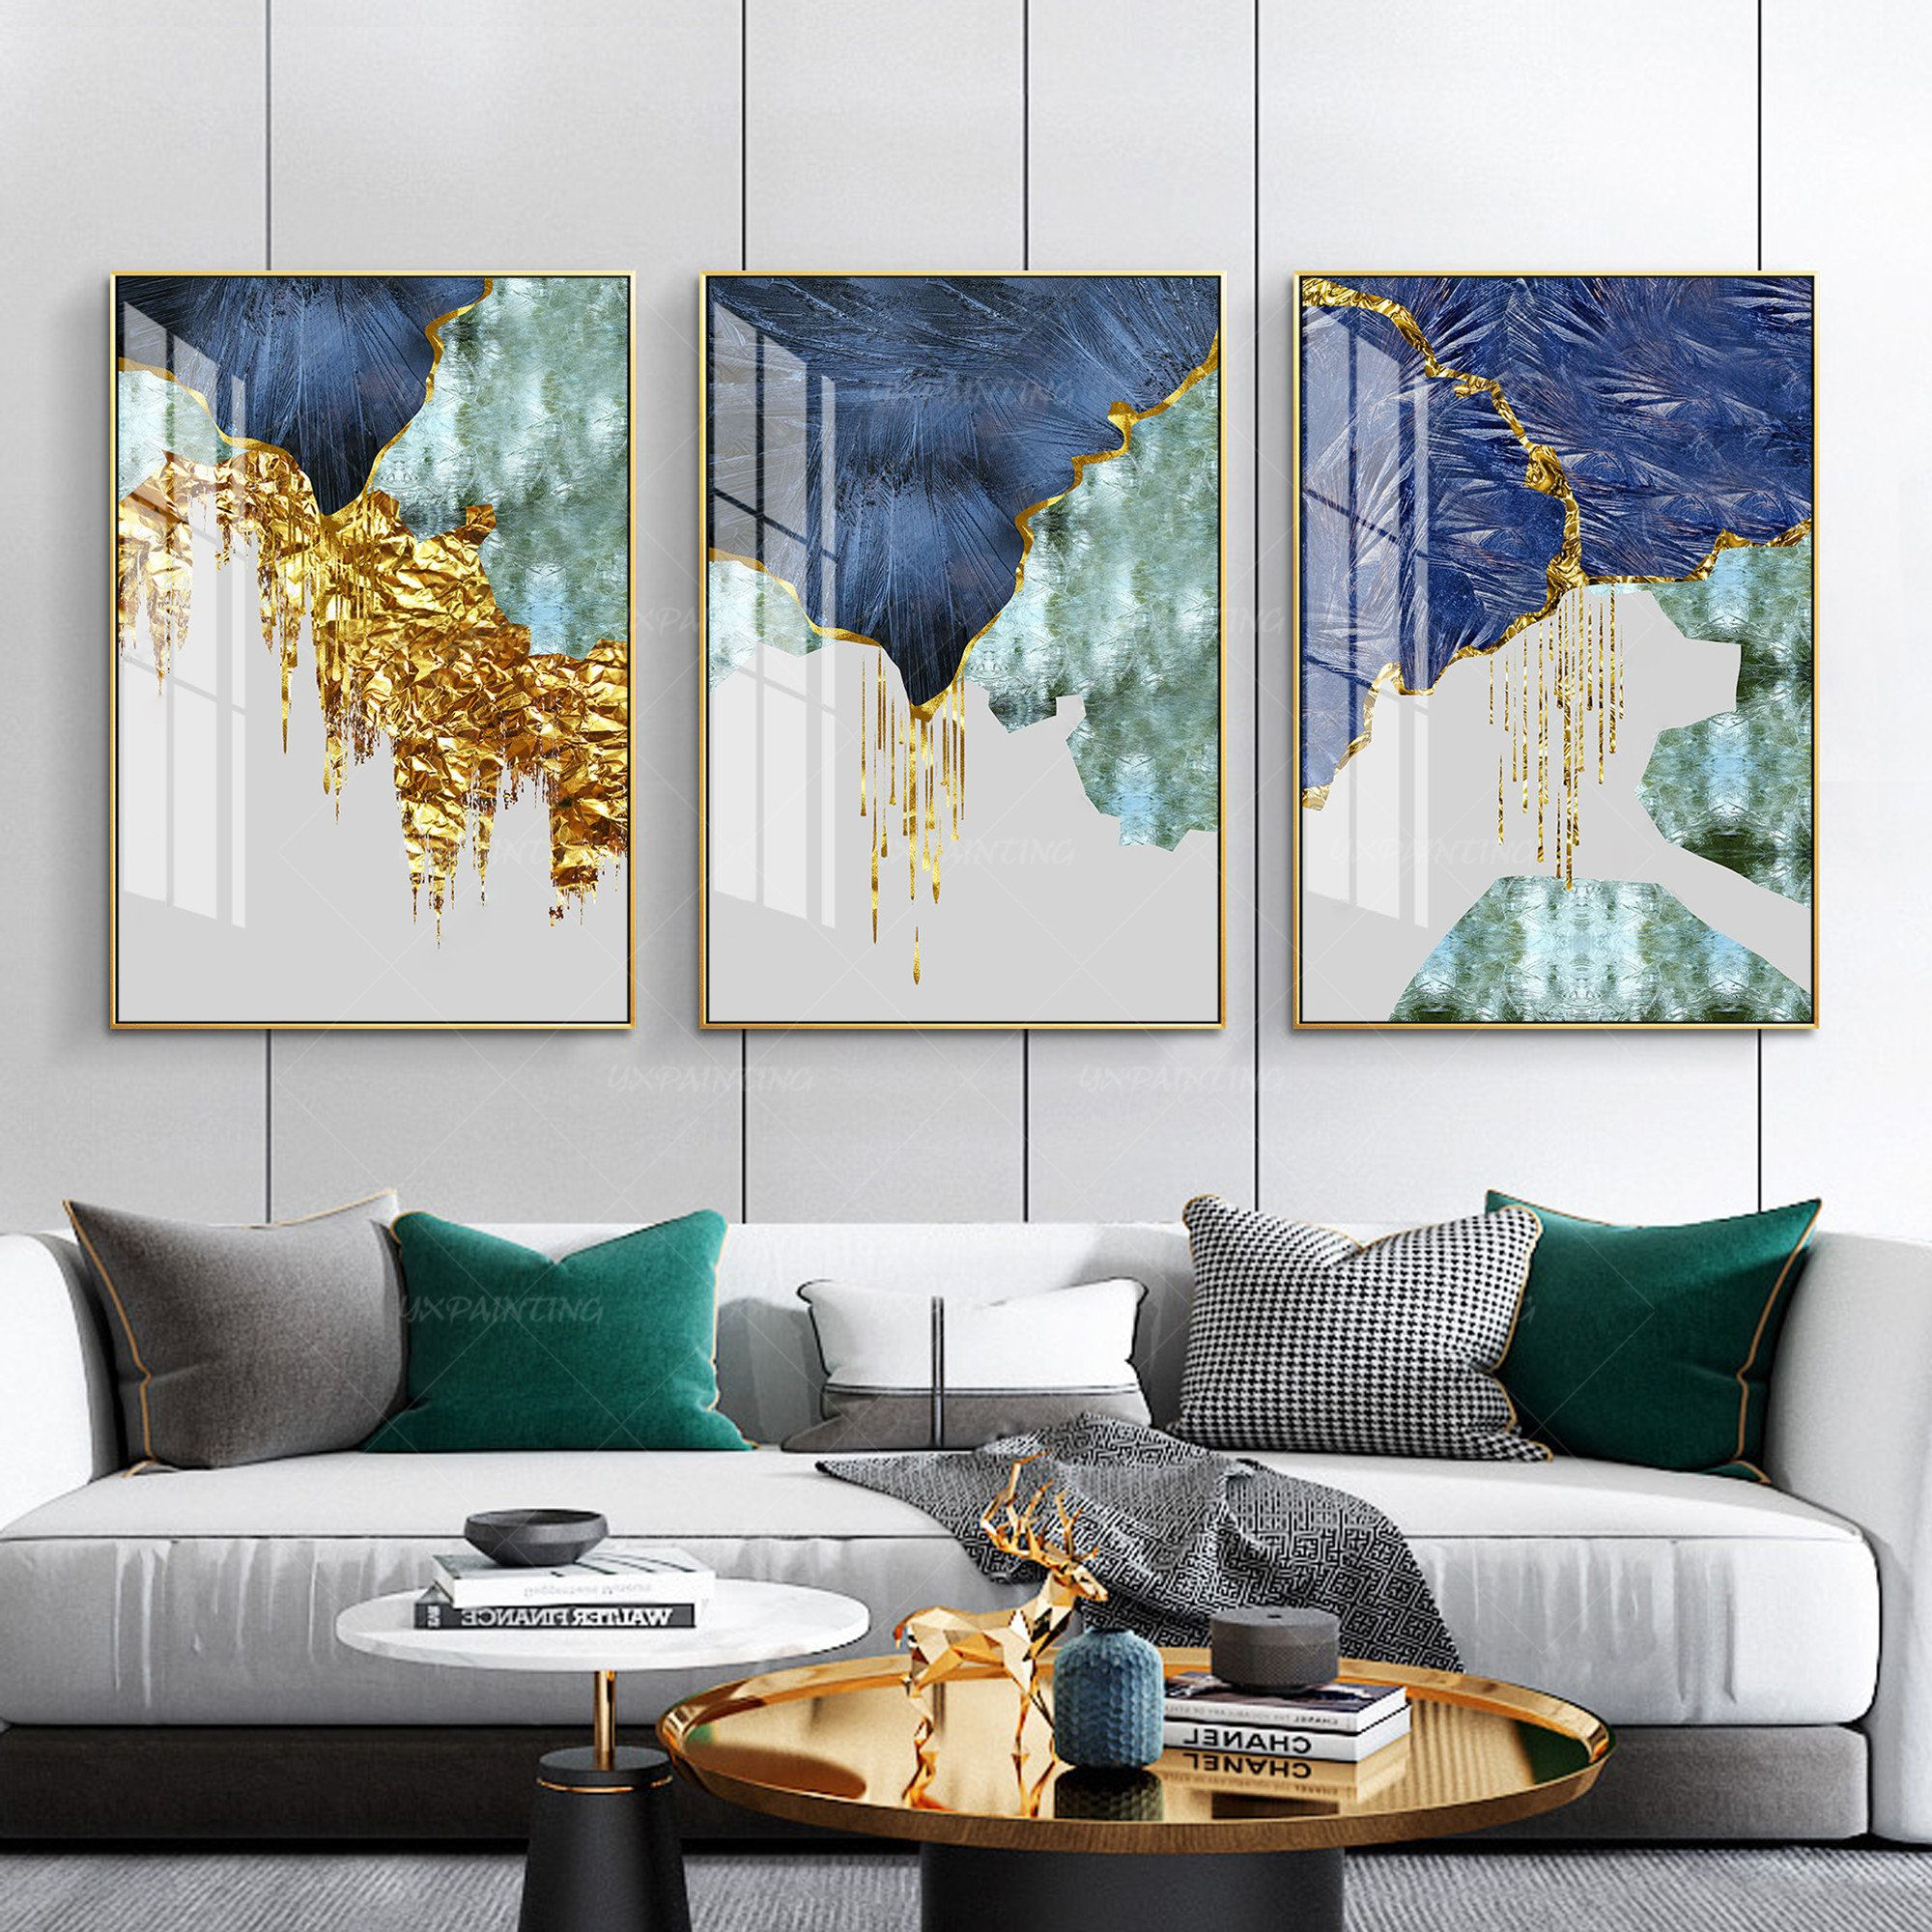 Framed Wall Art Set Of 3 Prints Geometric Gold Art Navy Blue Etsy In 2020 Frames On Wall Framed Wall Art Sets Large Wall Art